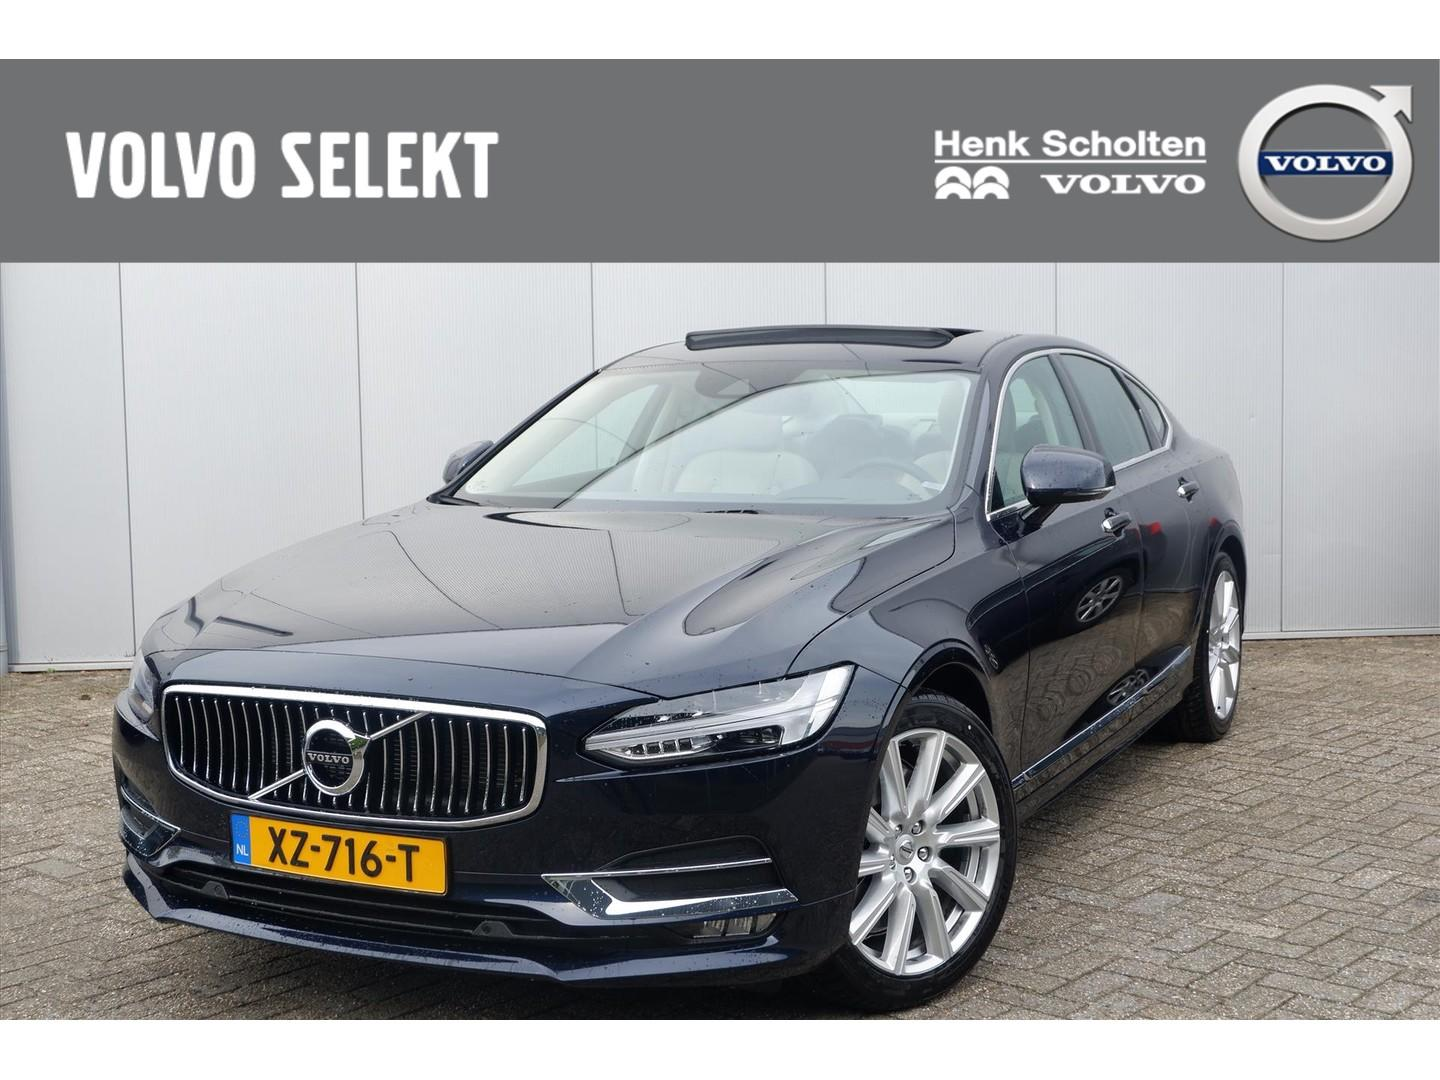 Volvo S90 T4 190pk aut8 inscription/standkachel/luxury